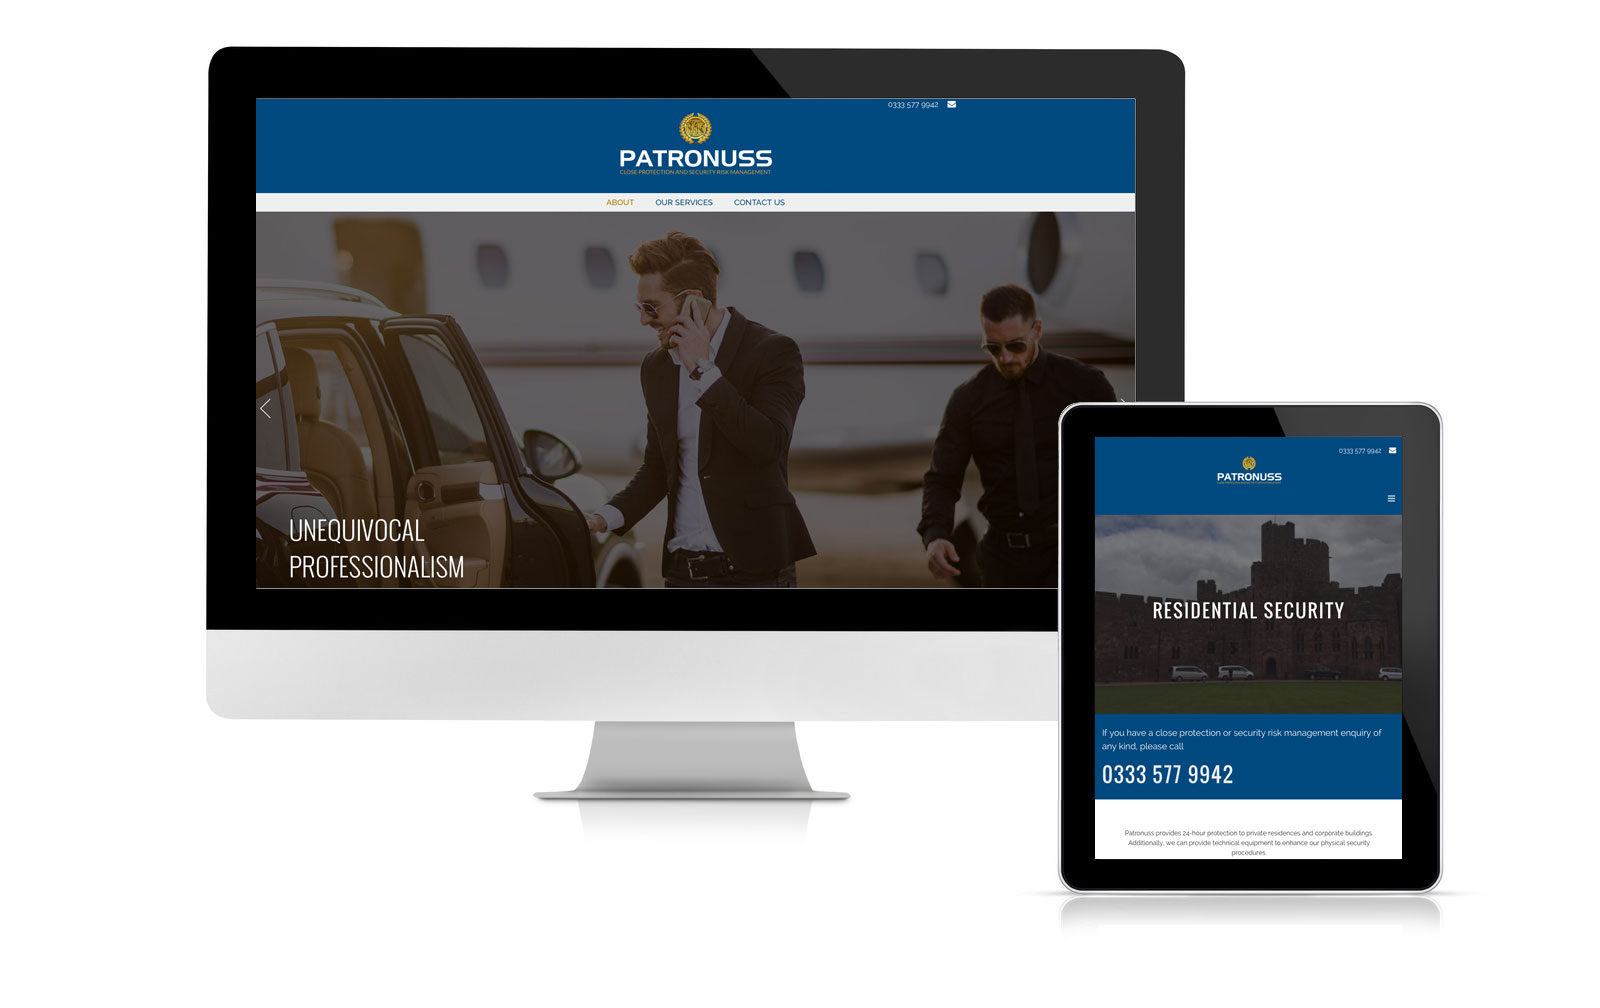 Patronuss website branding and marketing